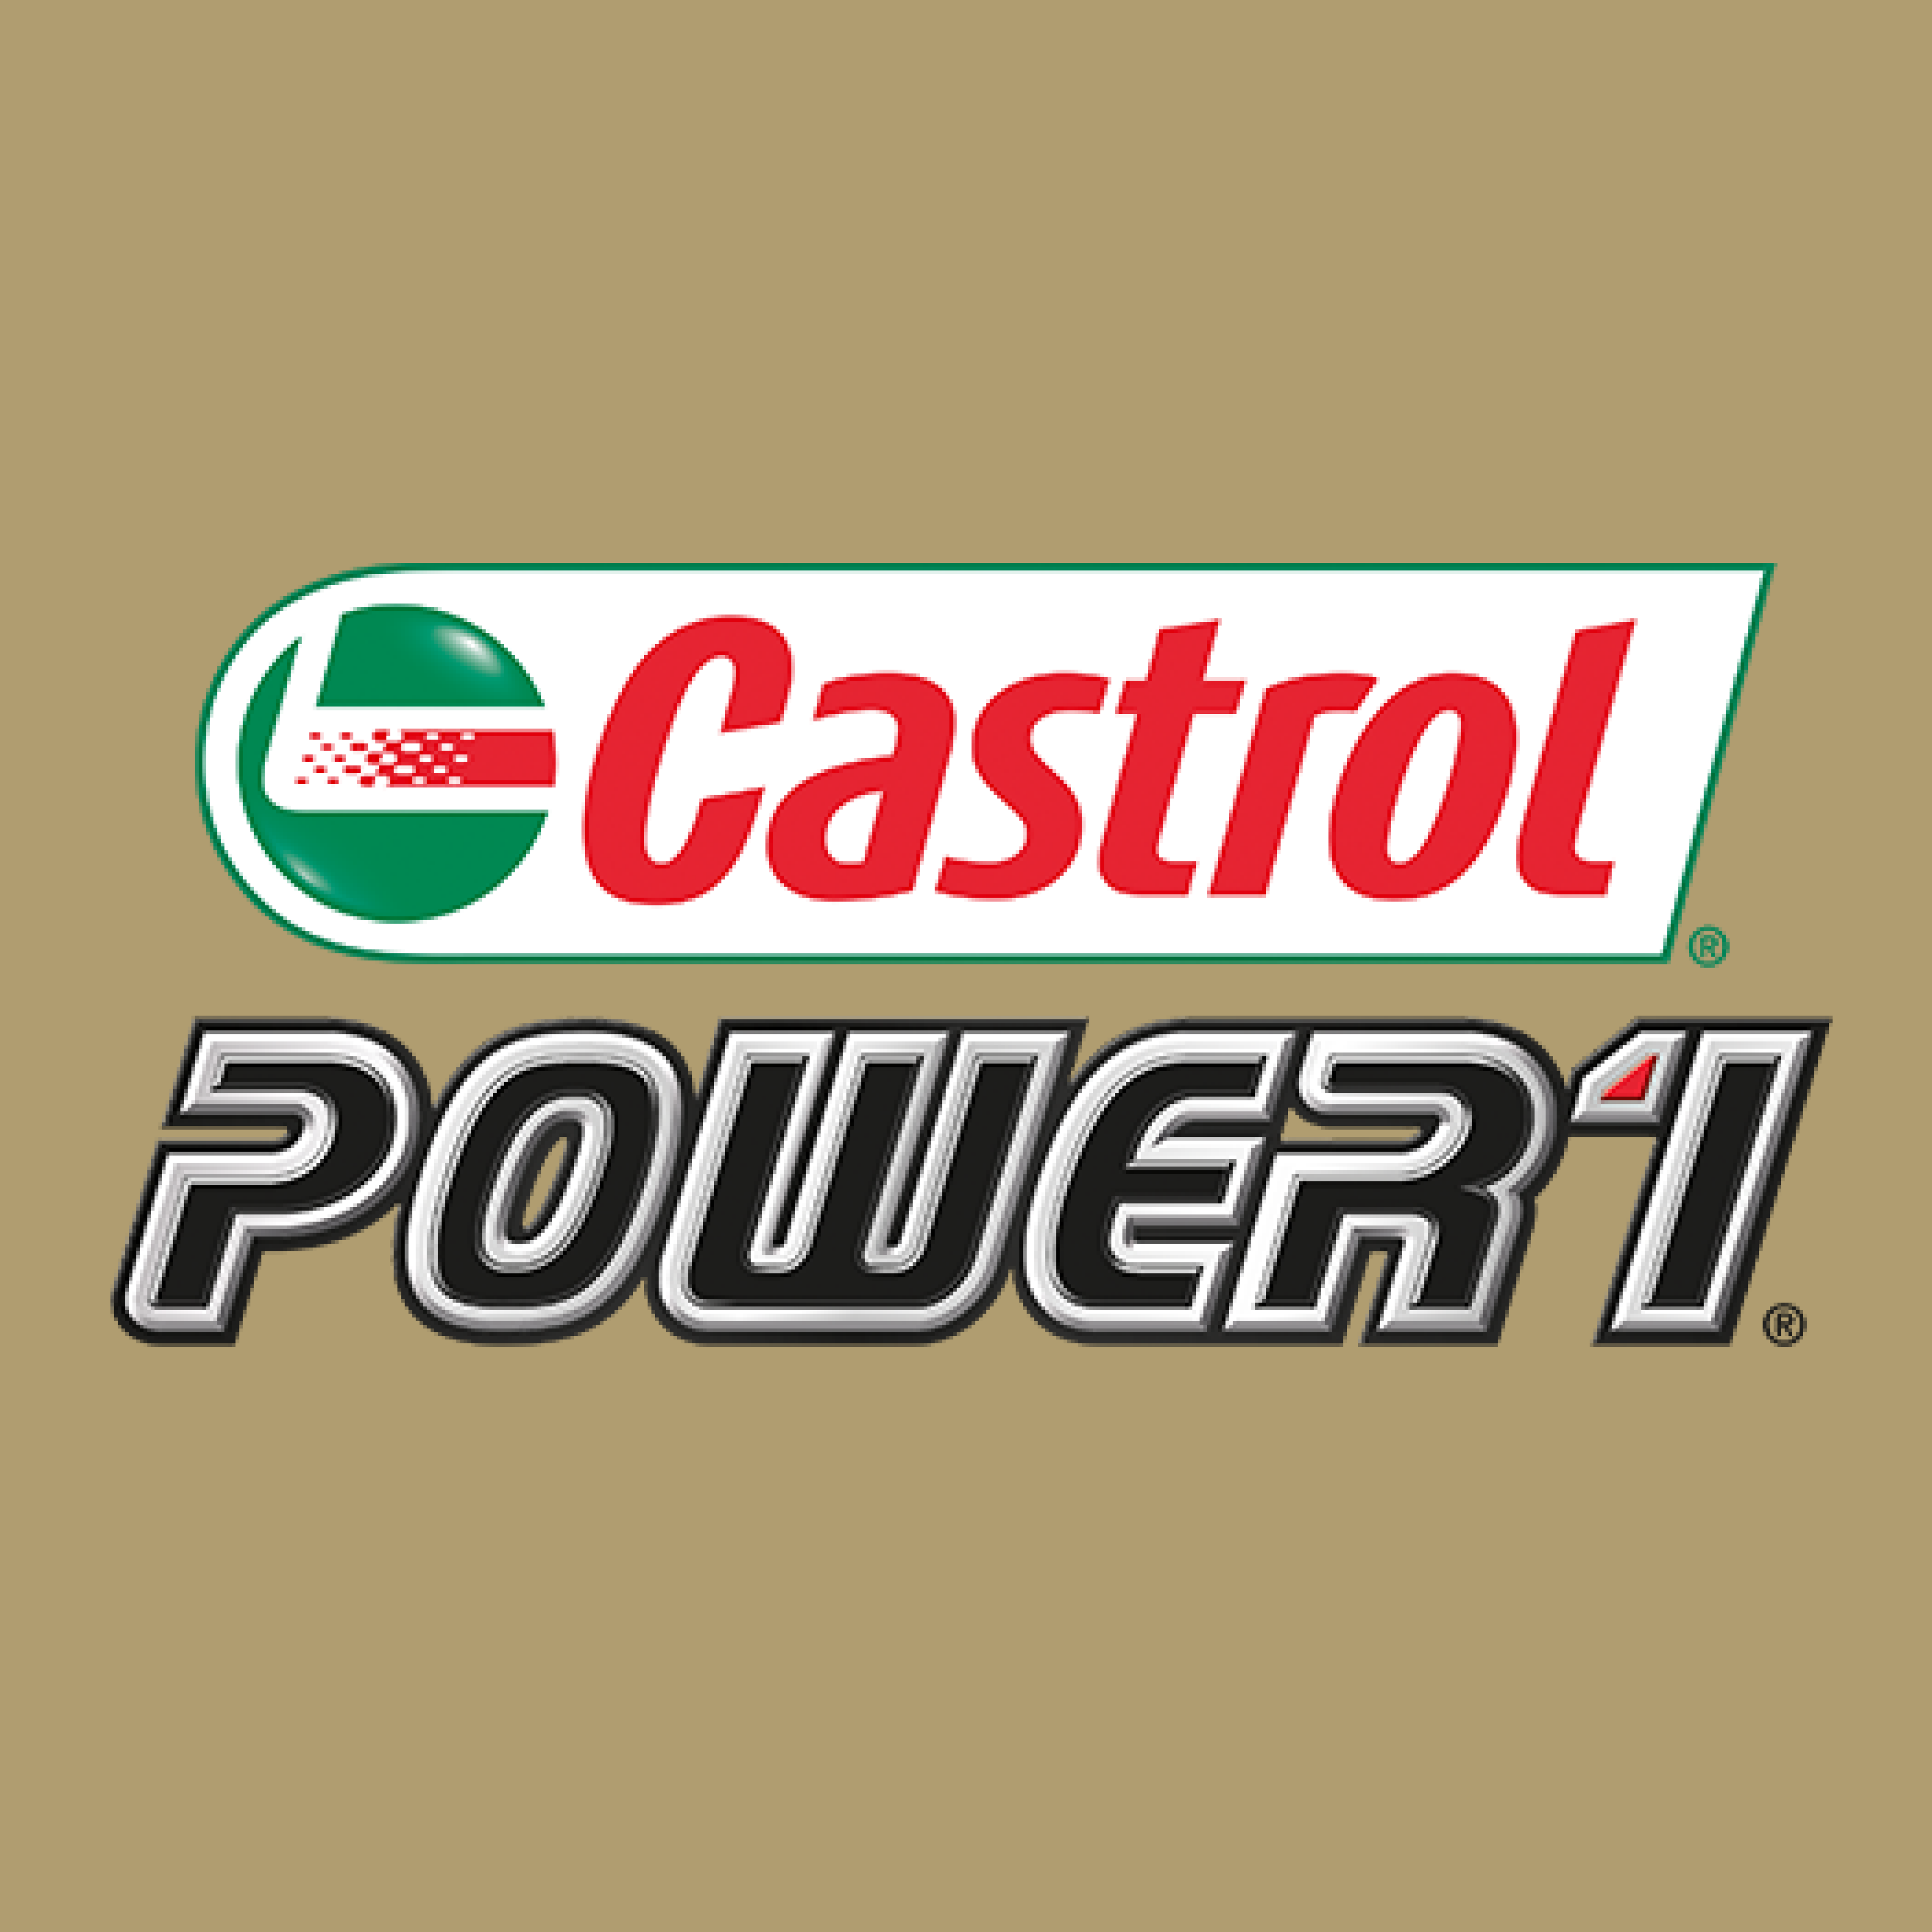 Castrol Power1 logo